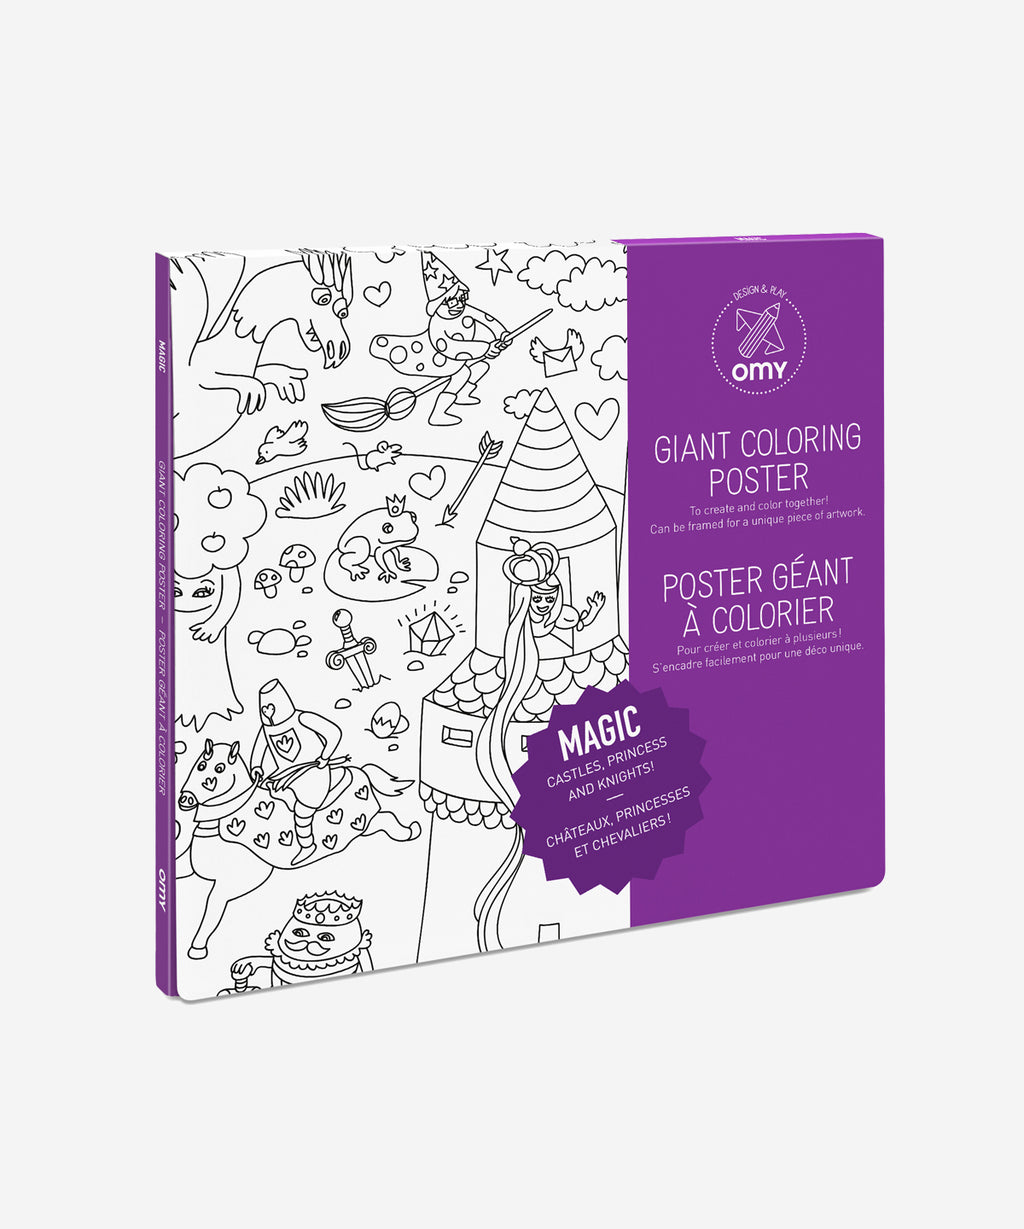 OMY Giant Coloring Poster - Magic